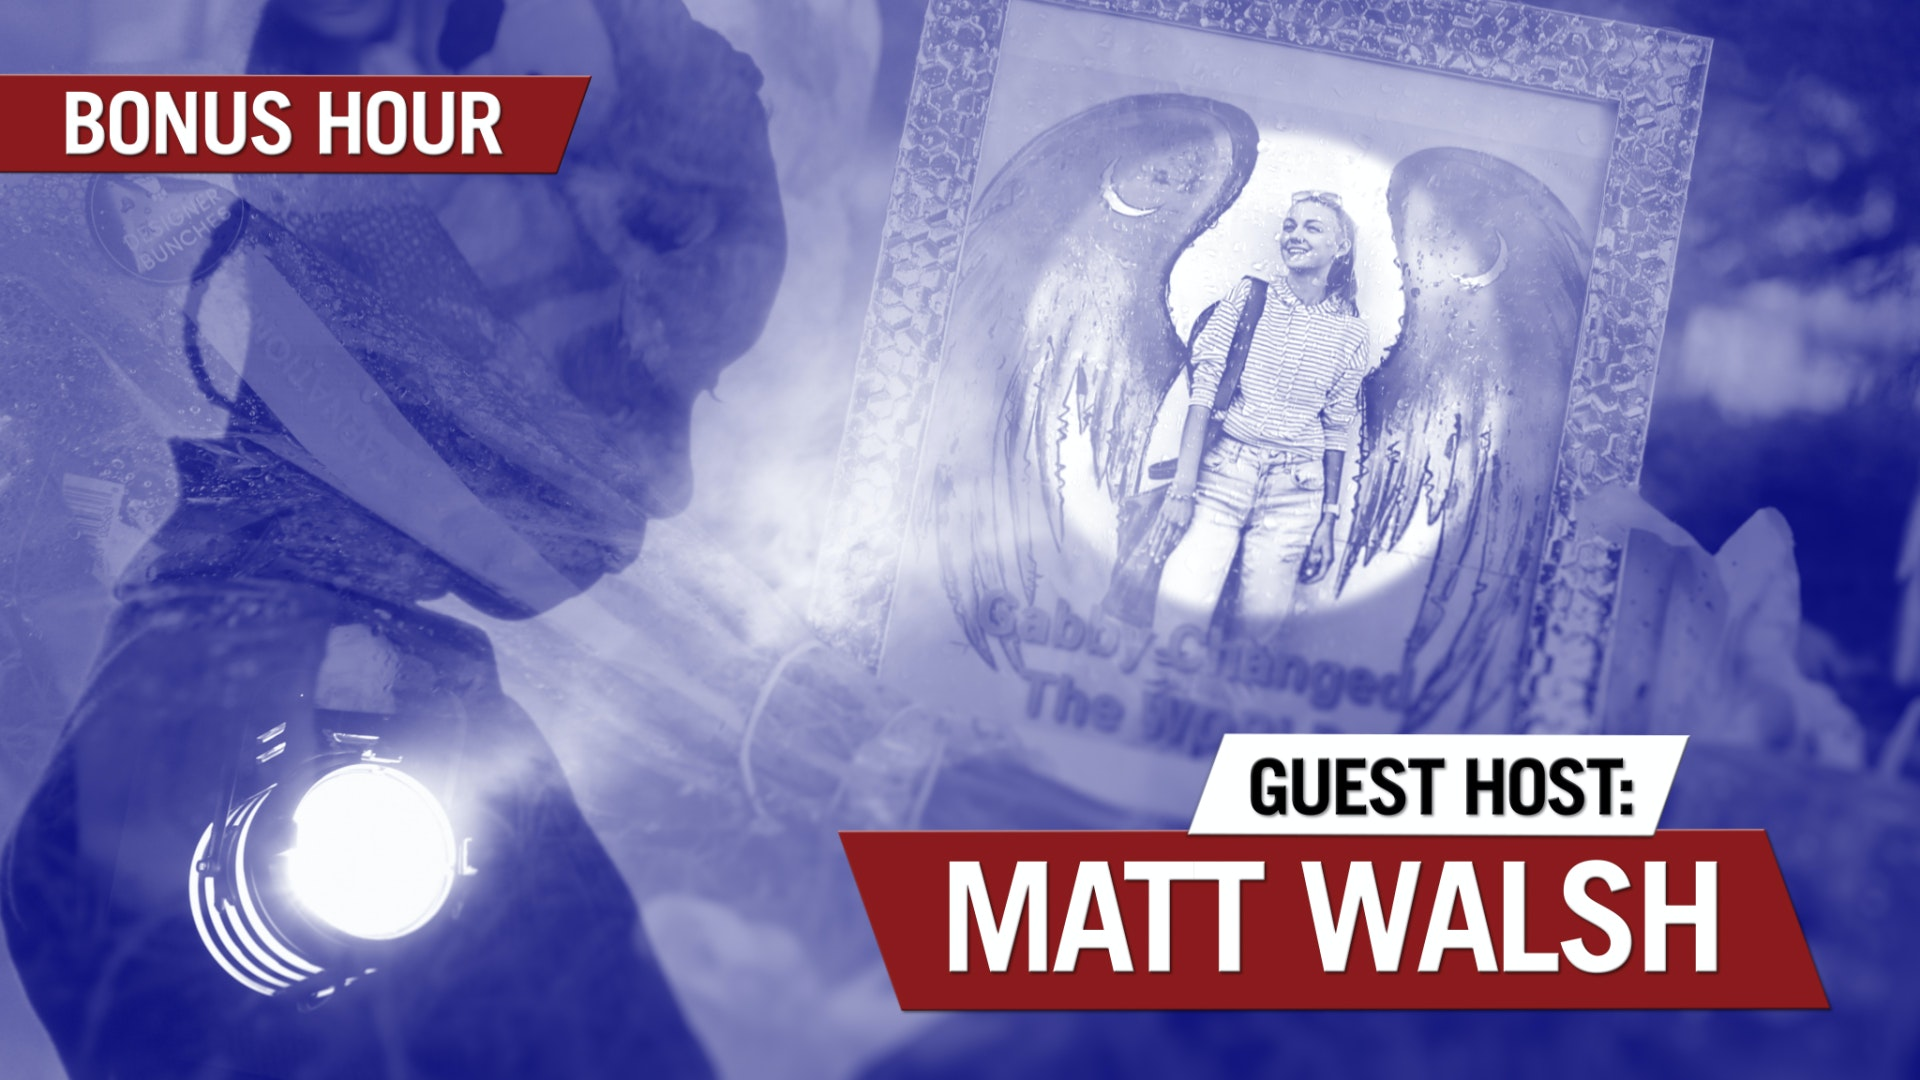 Here's Why The Media Ignores Some Murder Victims [Bonus Hours Guest Hosted By Matt Walsh]